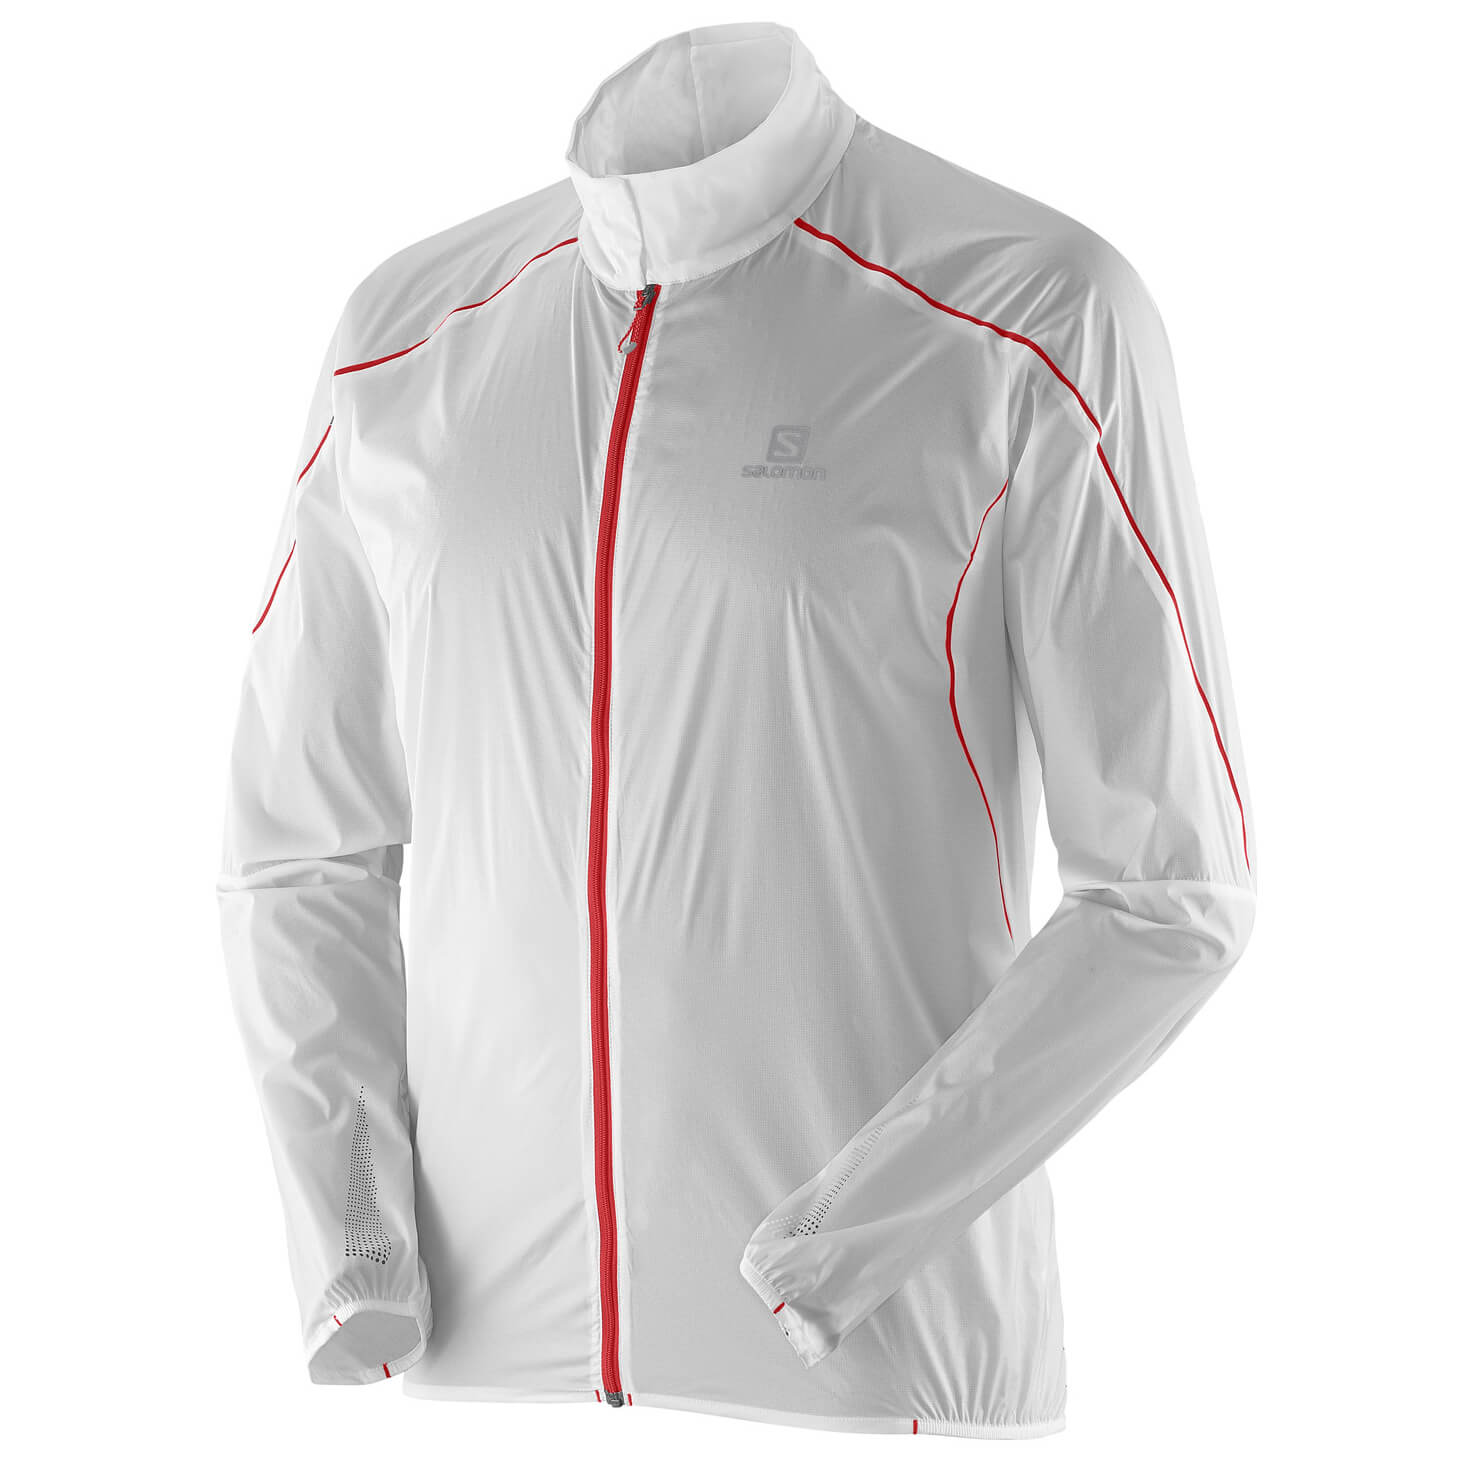 508238f3b Salomon S-Lab Light Jacket - Running jacket Men's | Buy online ...